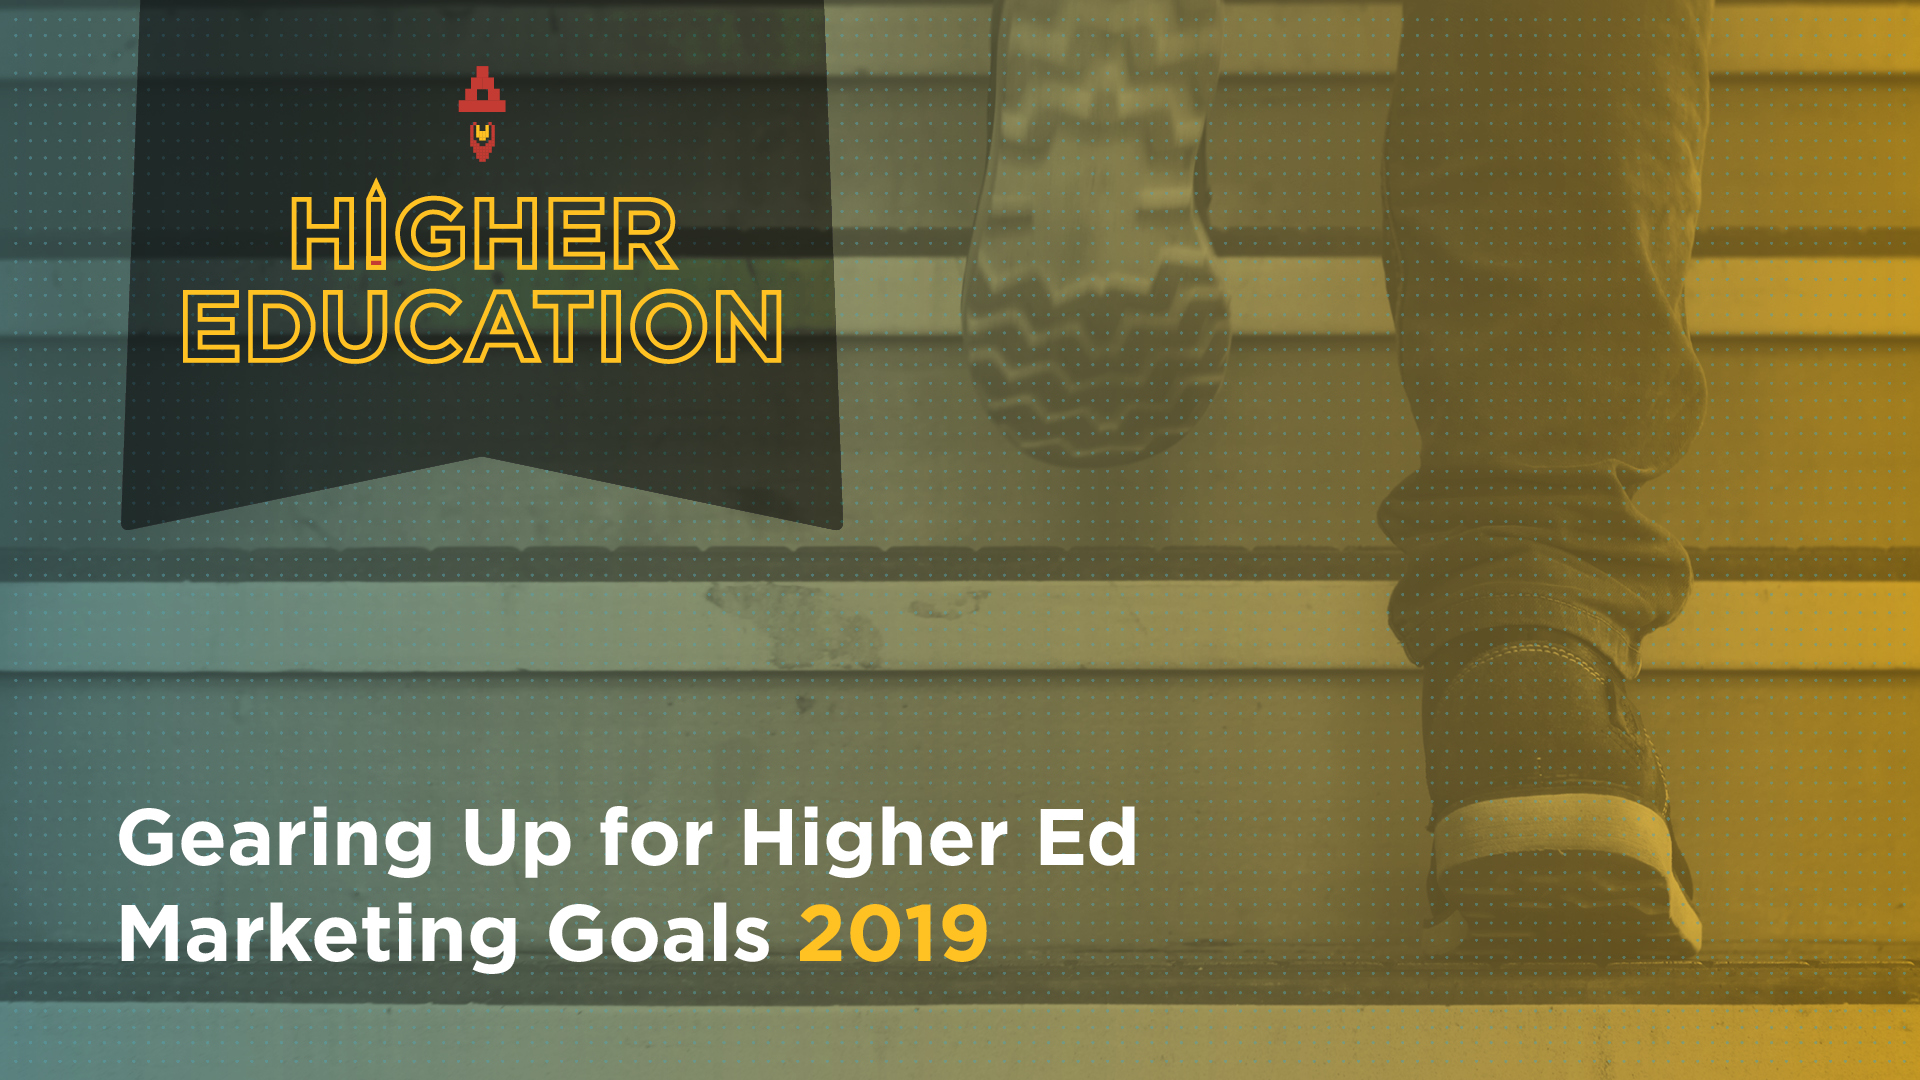 Gearing Up for Higher Ed Marketing Goals: 2019 Featured Image